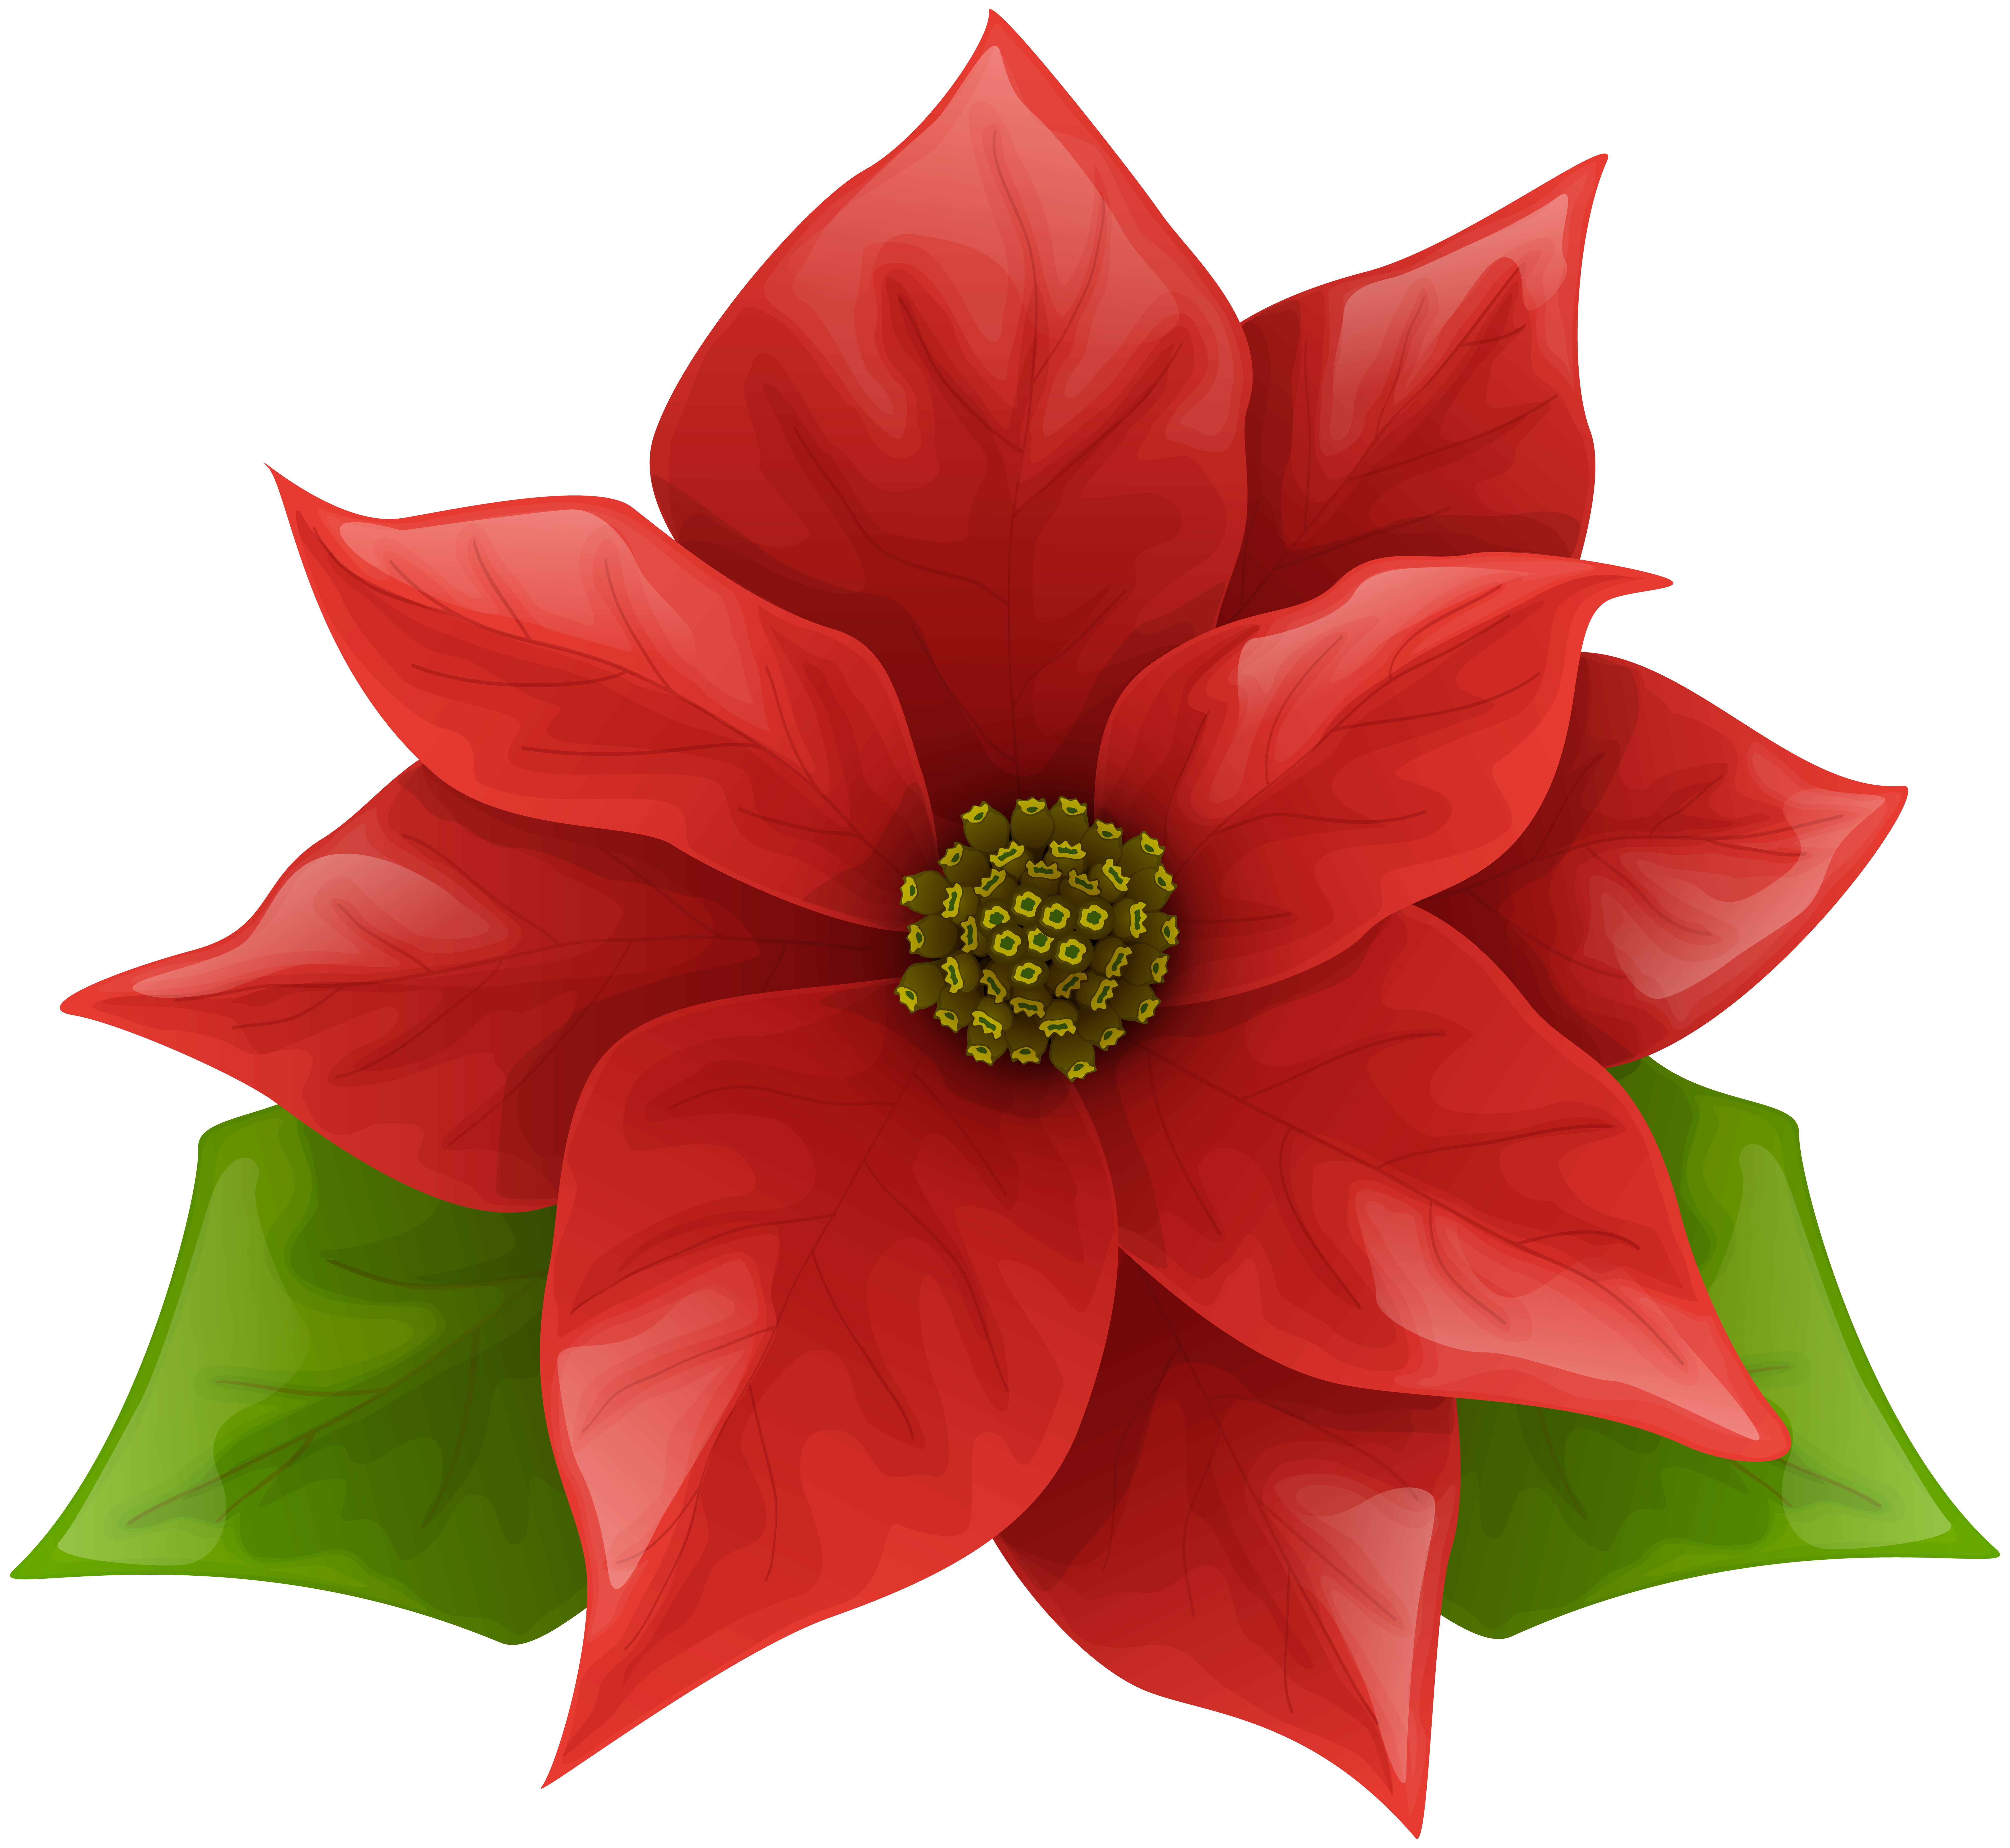 Poinsettias clipart poinsetta. Clip art images gallery